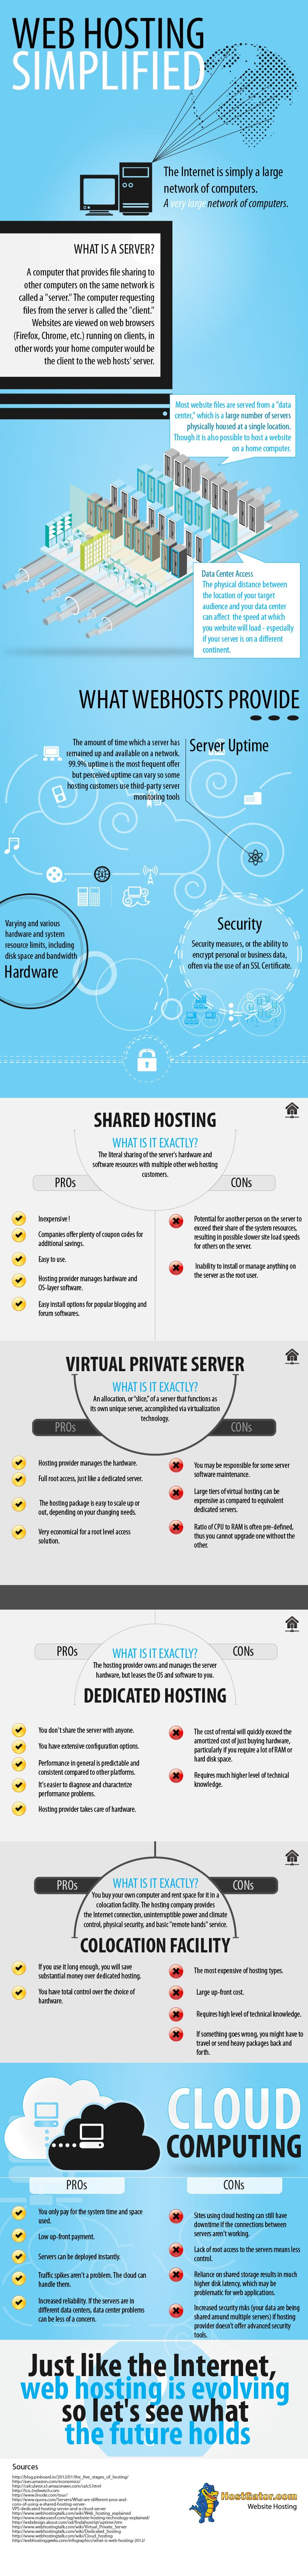 5 Types Of Web Hosting Services & What They Provide [Cheat Sheet]